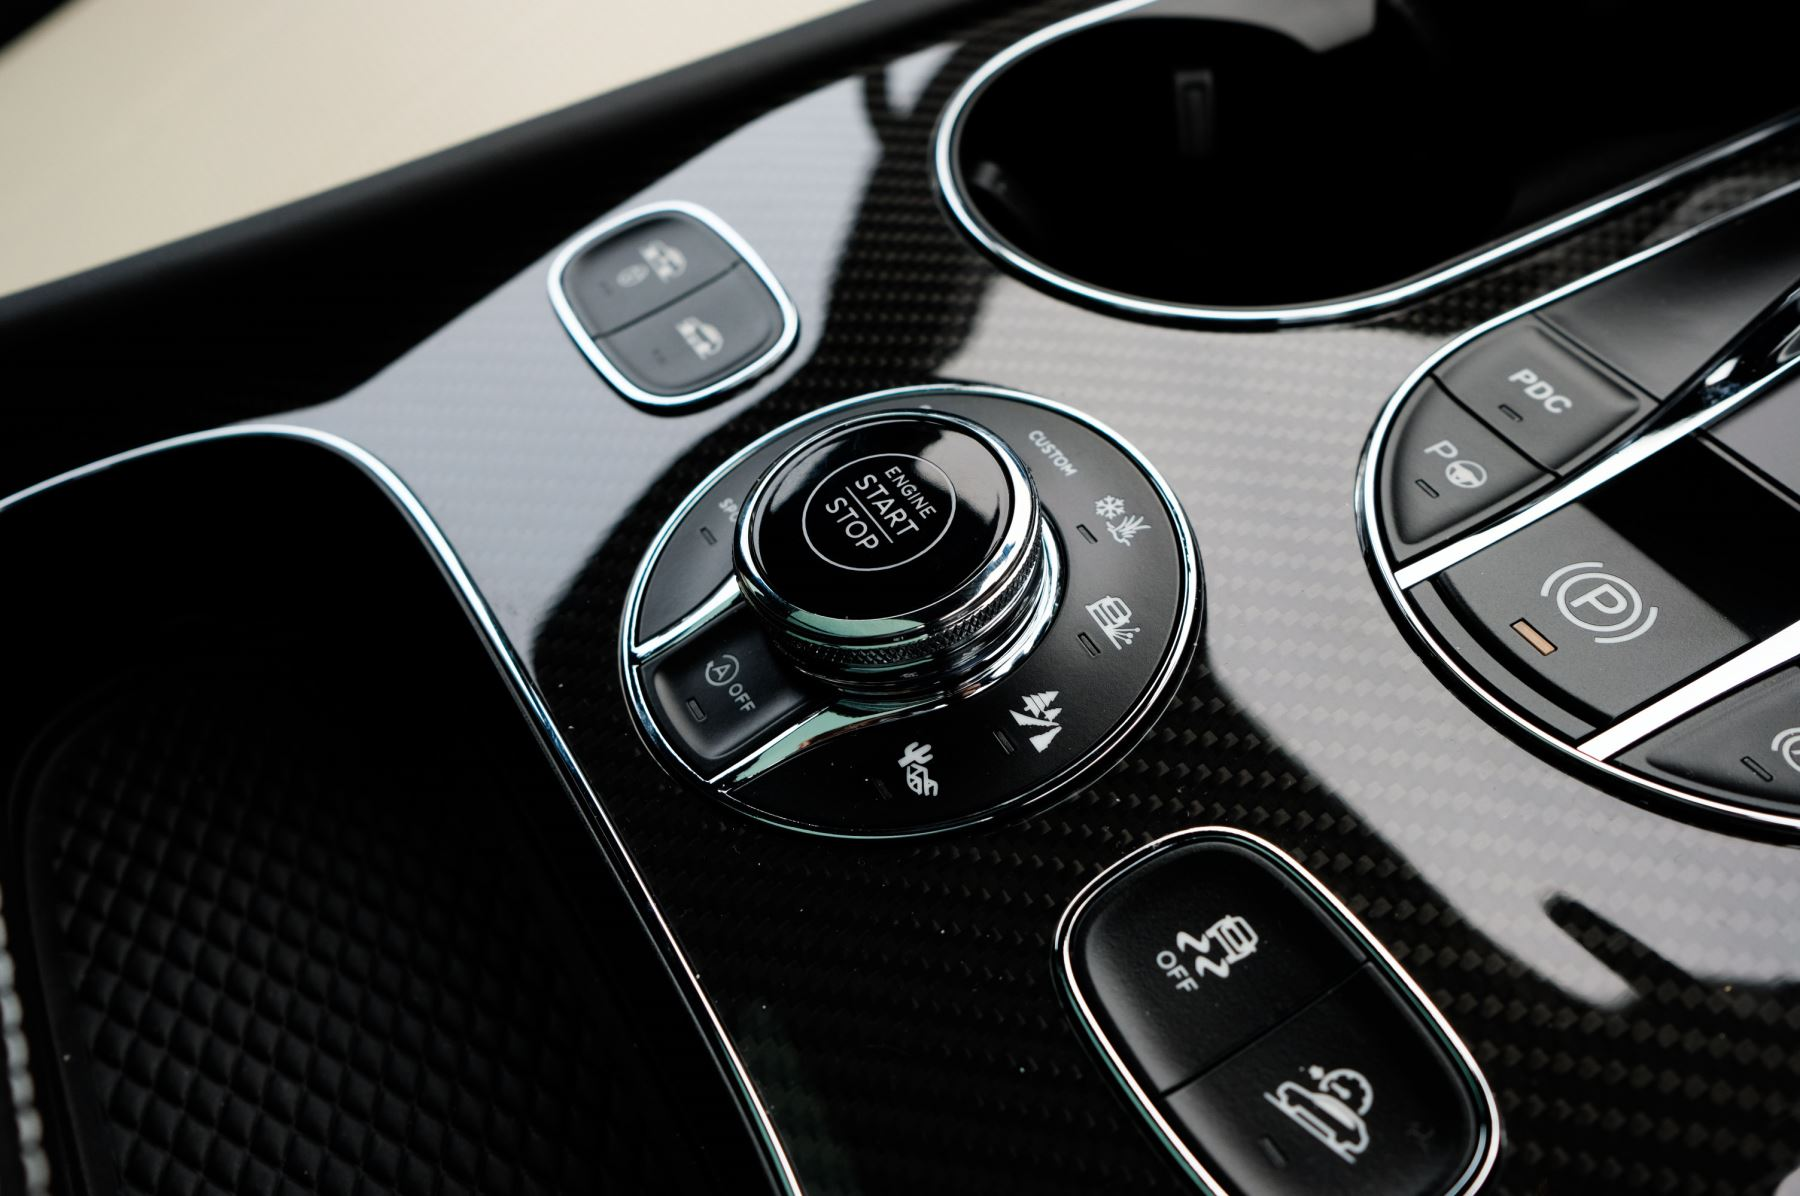 Bentley Bentayga 4.0 V8 5dr [4 Seat] - First Edition - All Terrain Specification image 29